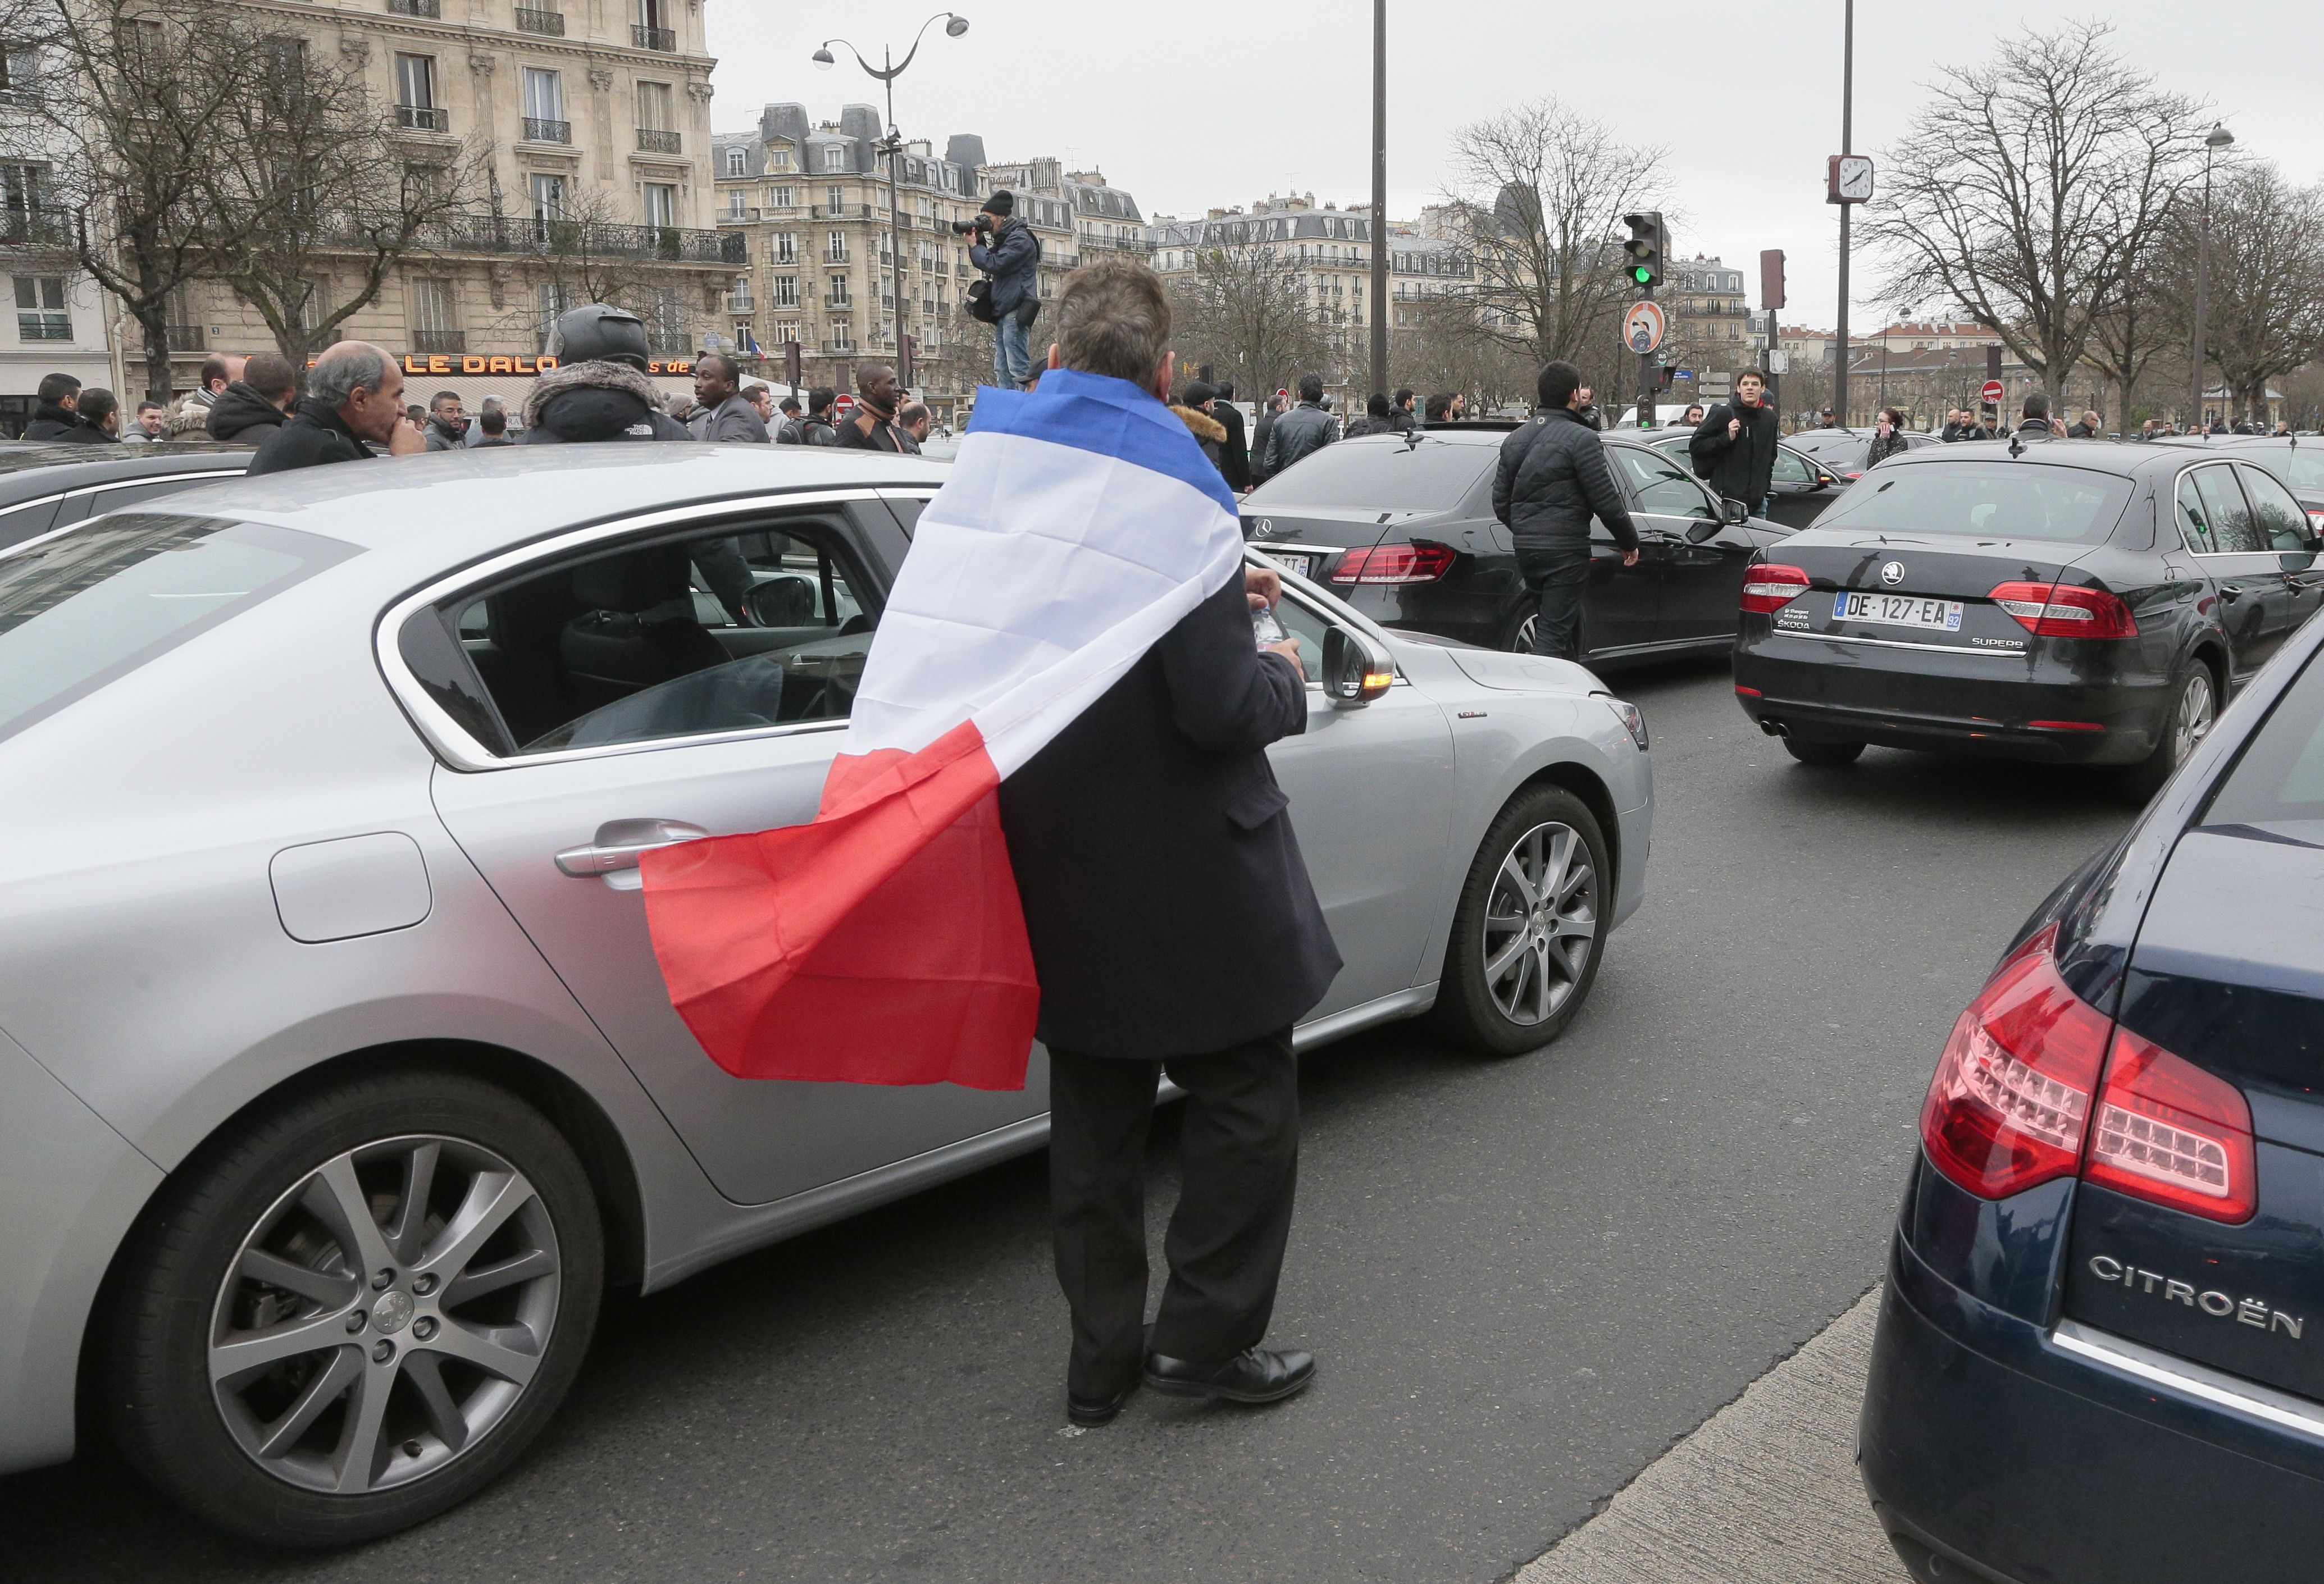 FRANCE-TRANSPORT-PRIVATE-VTC-TAXIS-DEMO